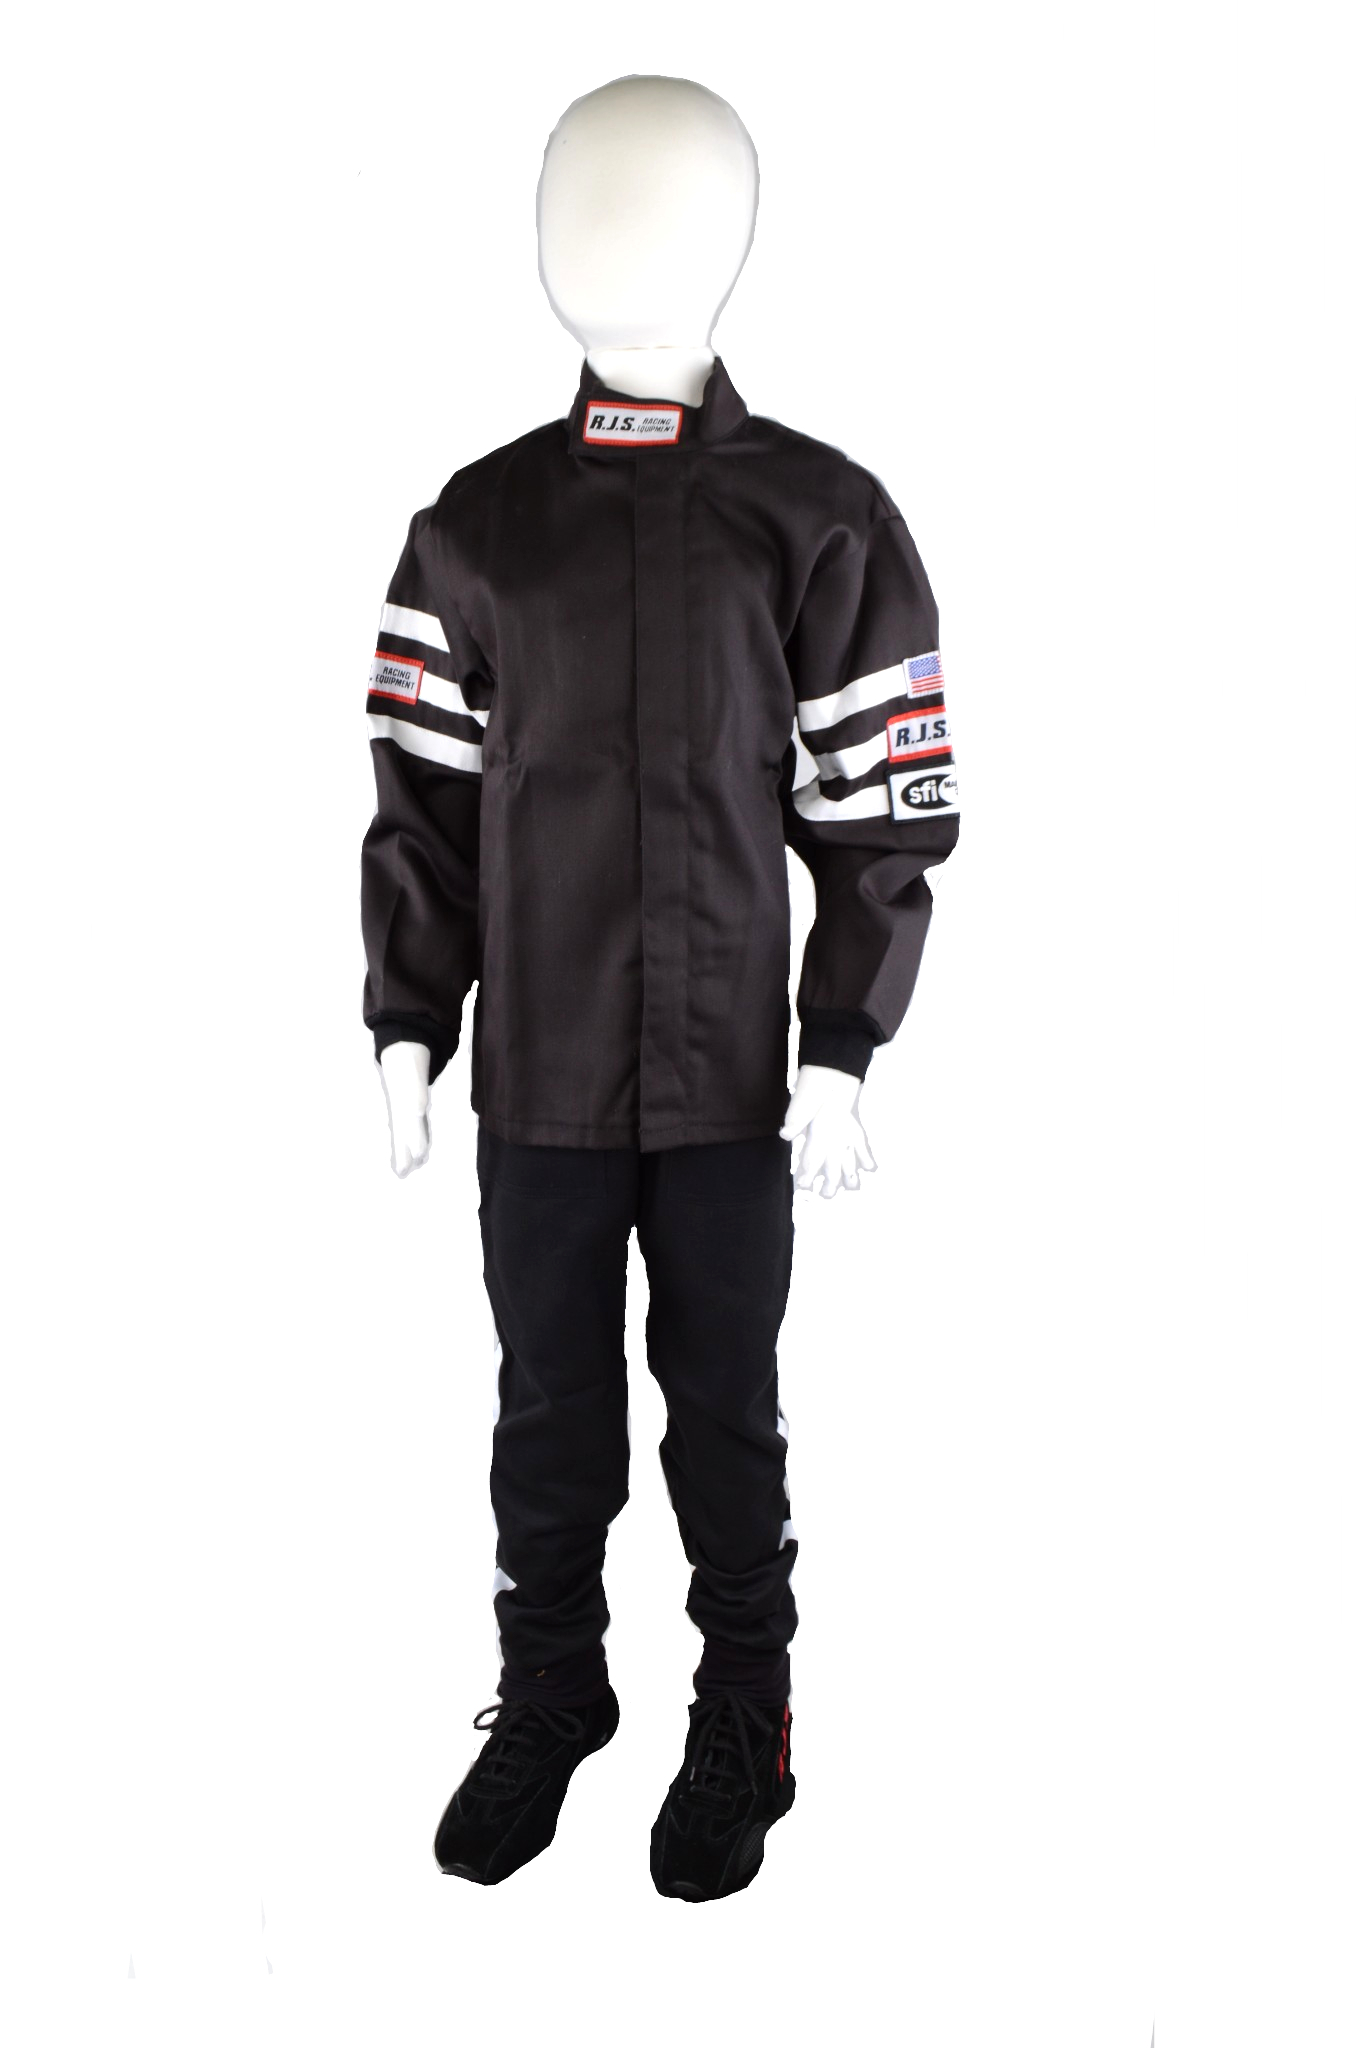 FIRE SUIT DRIVING JACKET BLACK /& WHITE STRIPES ADULT XL SFI 3-2A//1 RJS RACING